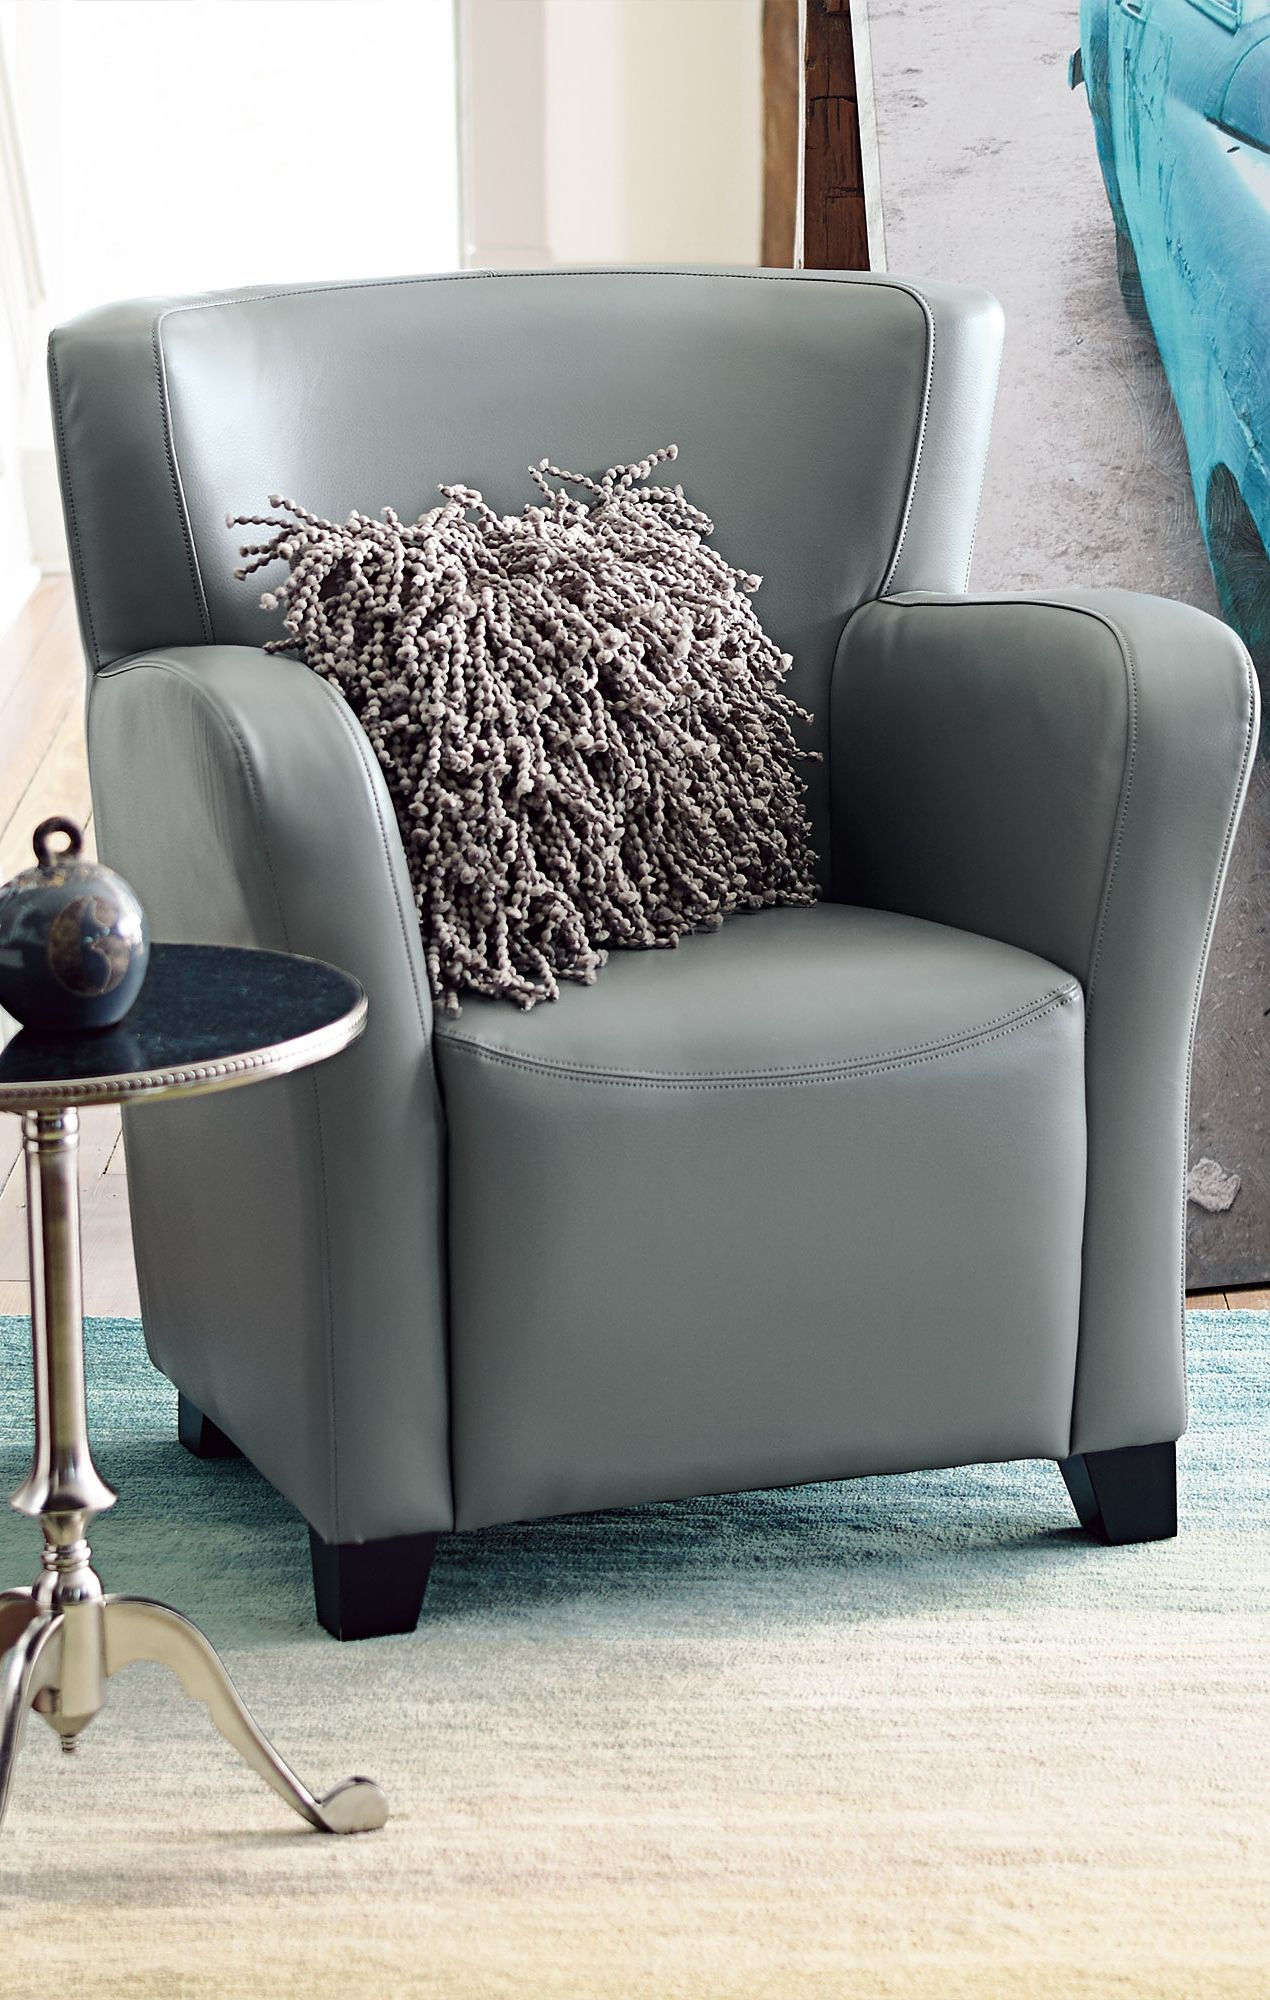 Our Oxford Leather Chair Sports A Space Friendly Design With Supportive  Cushioning.